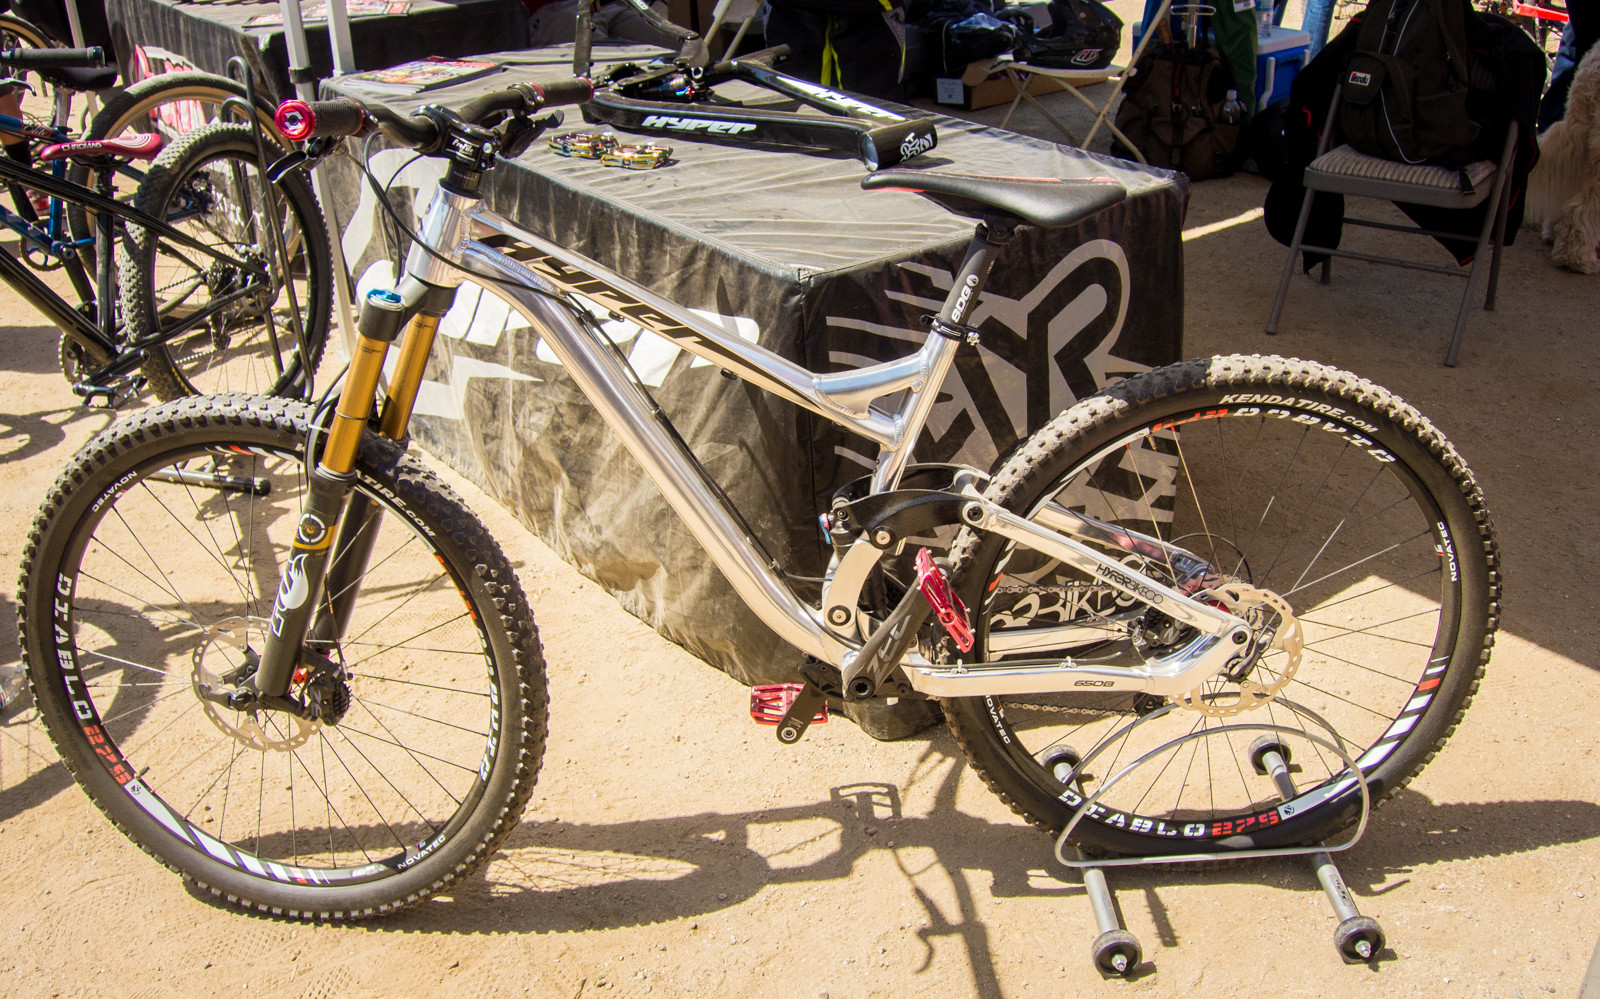 Hyper Trail Frame - Sea Otter Classic - 2014 Sea Otter Classic Pit Bits - Final Edition - Mountain Biking Pictures - Vital MTB